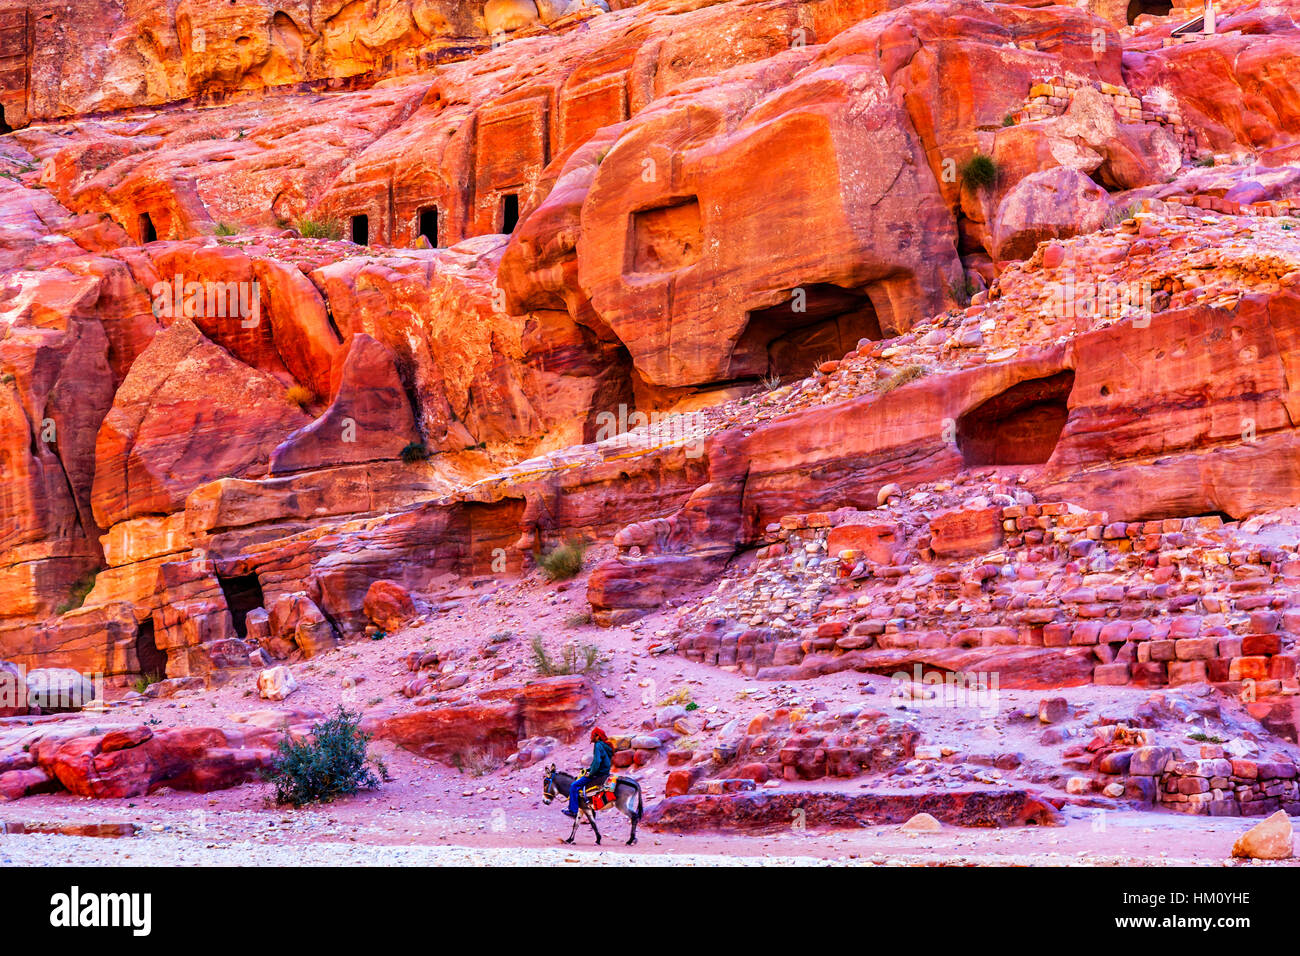 Donkey Rose Red Rock Tombs Afternoon Street of Facades Petra Jordan.  Built by the Nabataens in 200 BC to 400 AD. - Stock Image